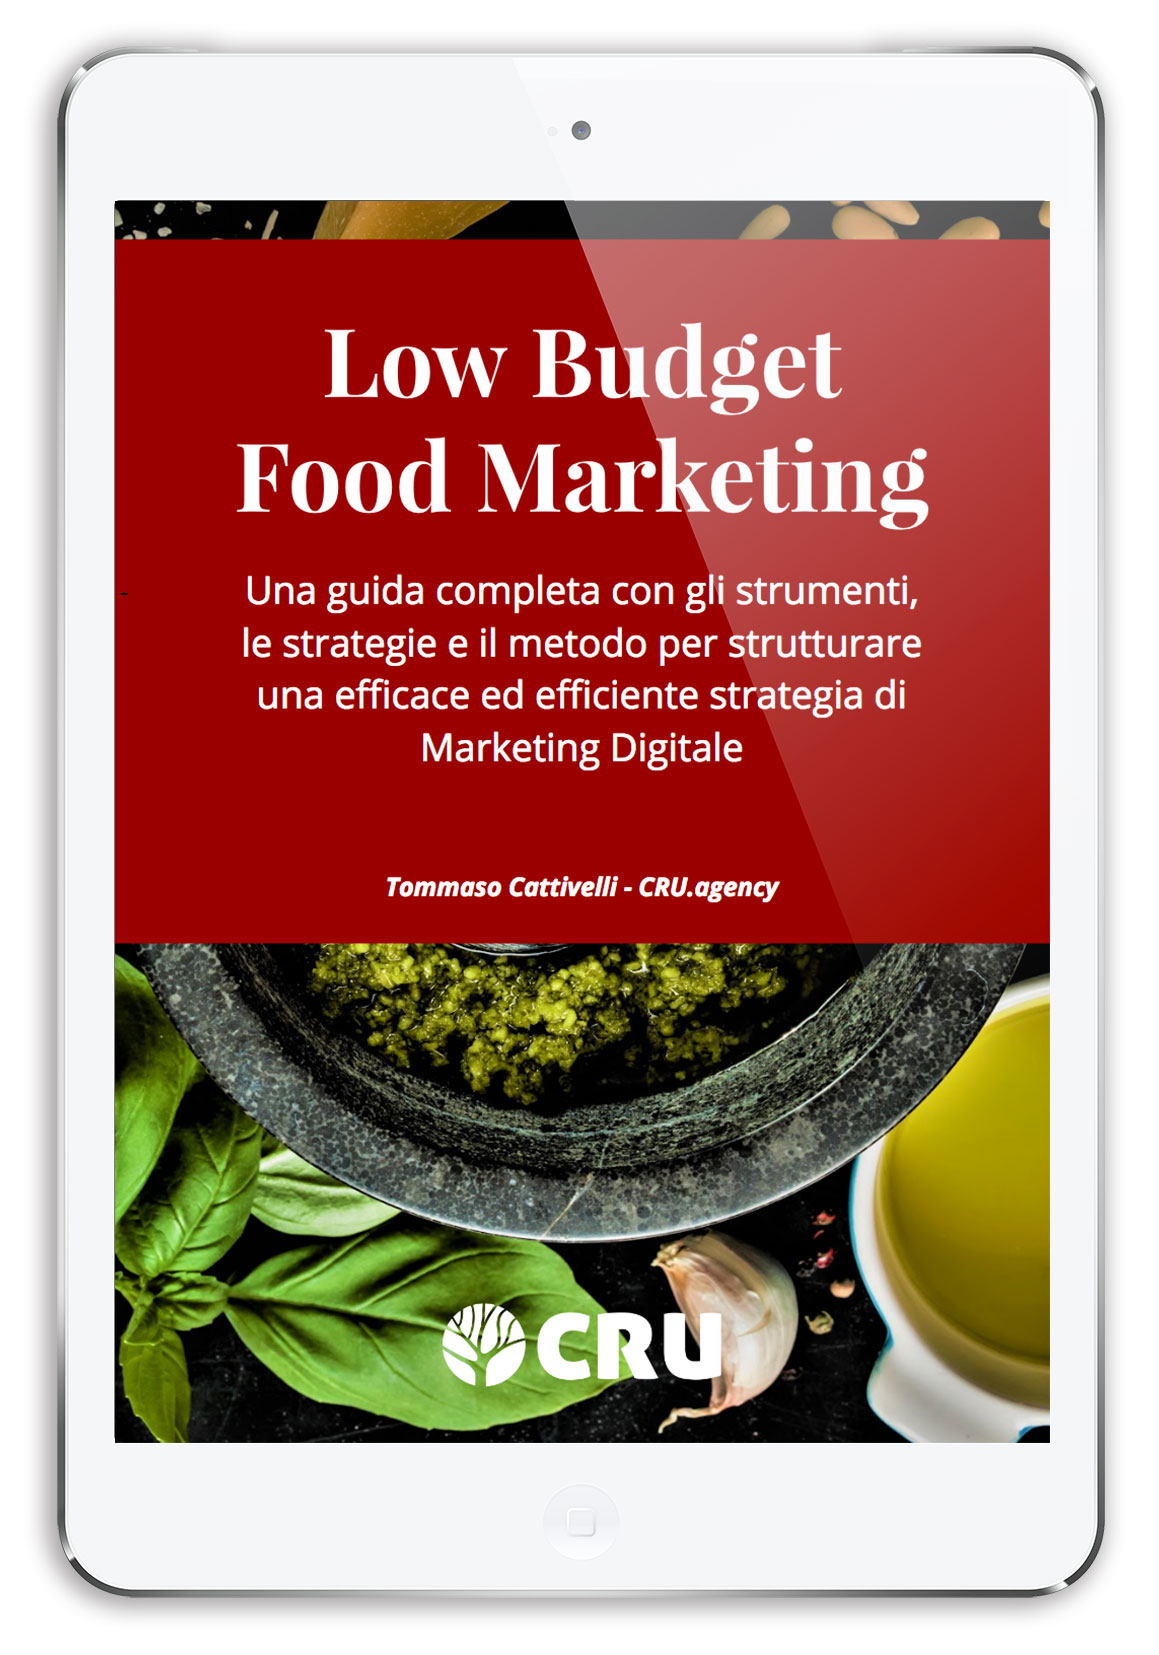 food marketing a basso costo